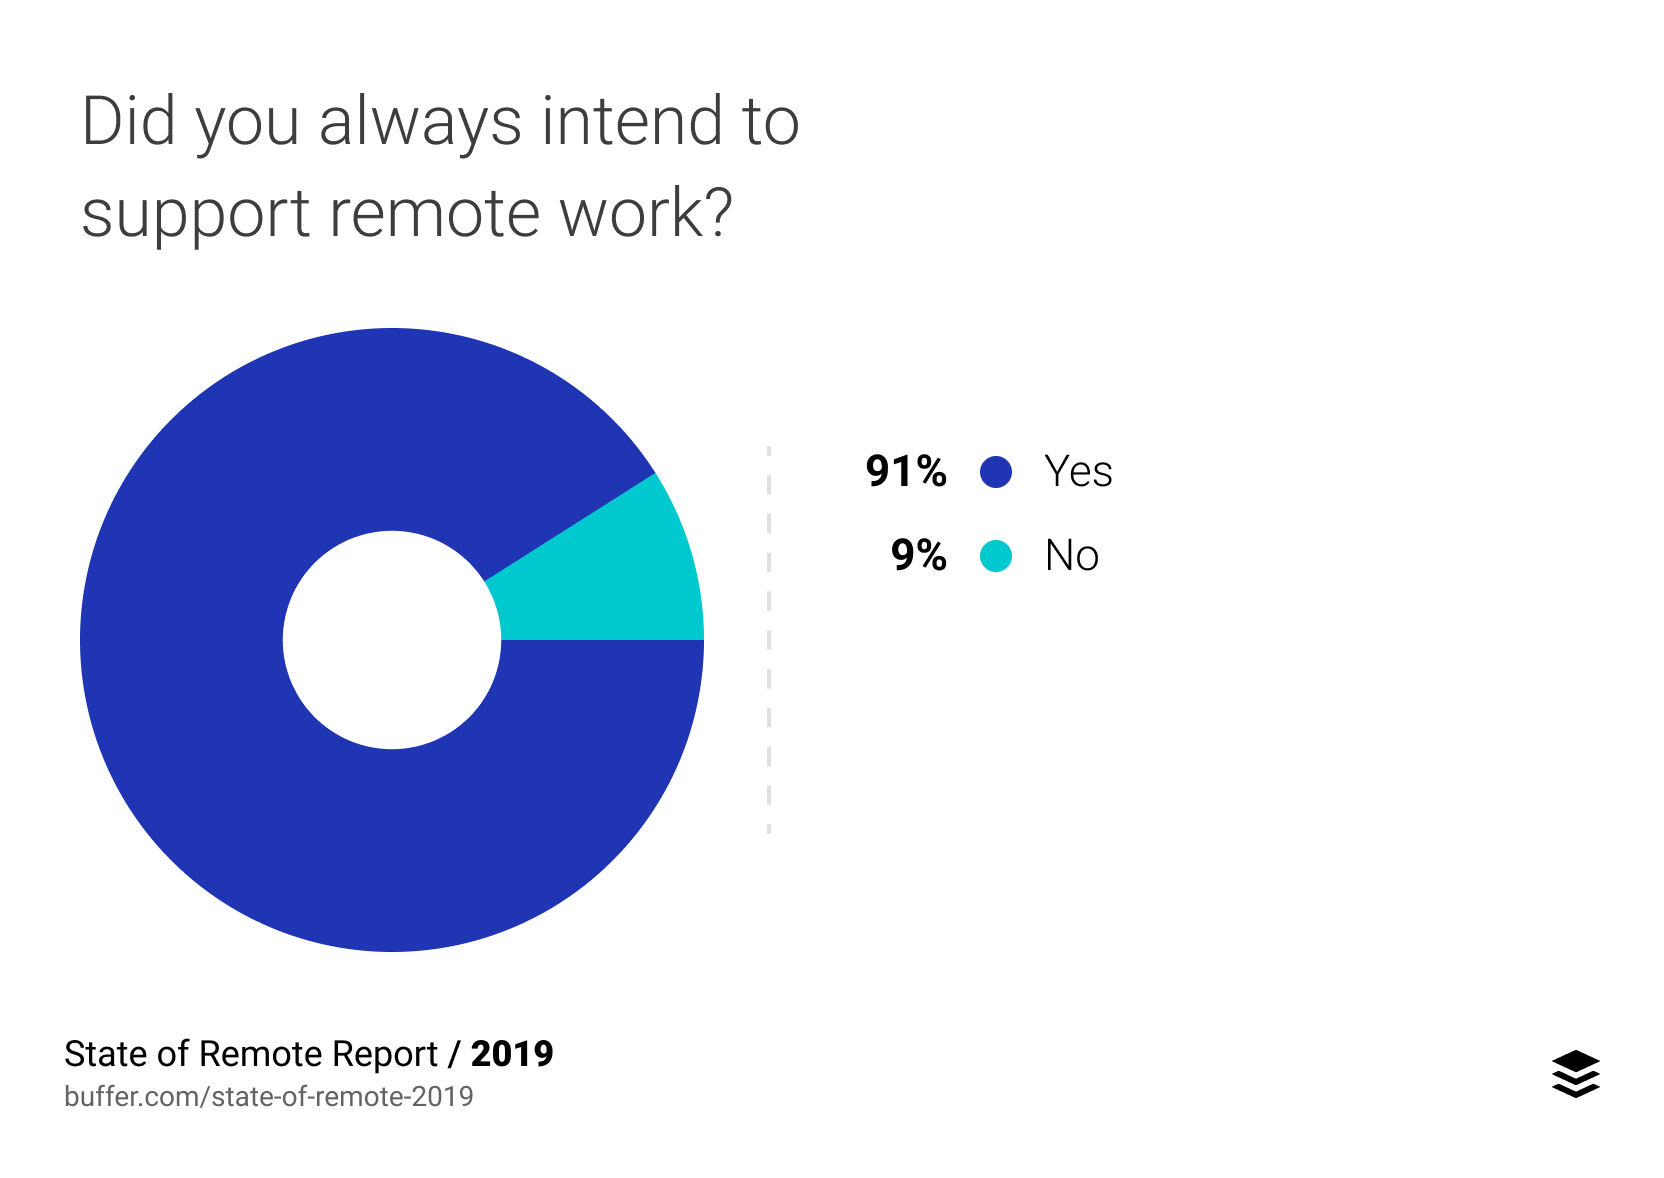 Did you always intend to support remote work?